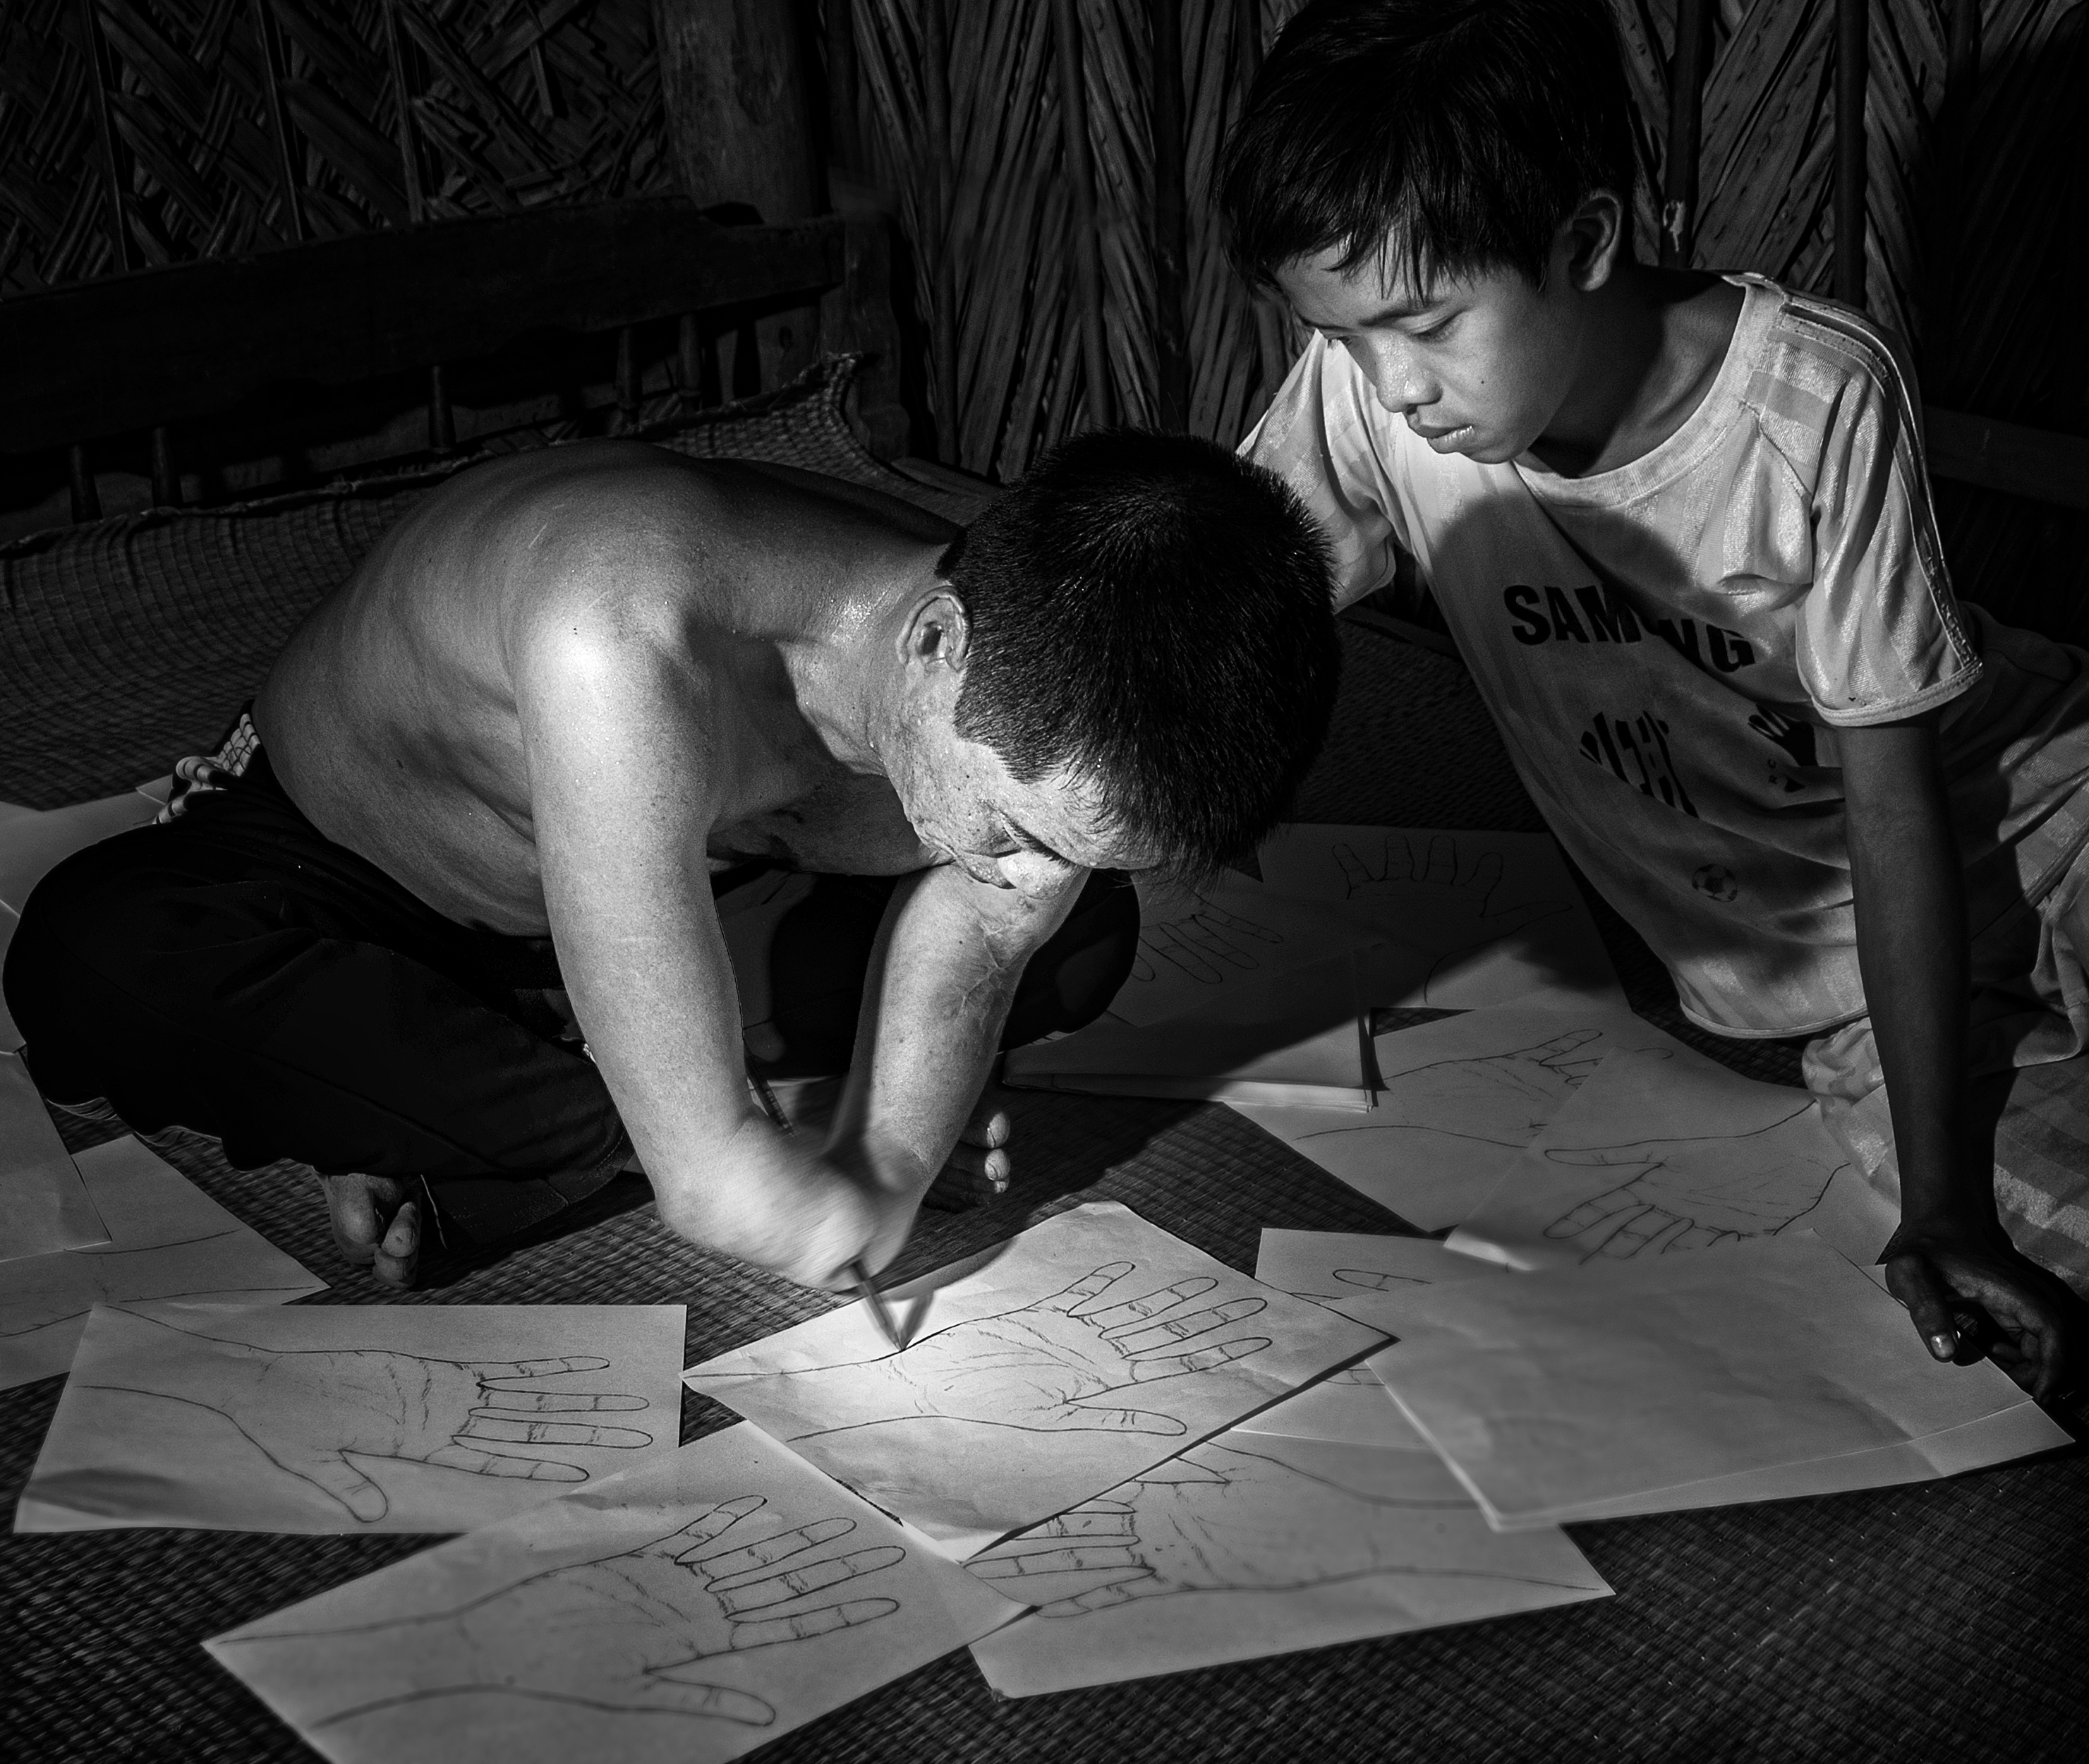 Black and white photo of a man and boy. The man has an amputated hand, sit together on the ground drawing and writing on sheets of paper.